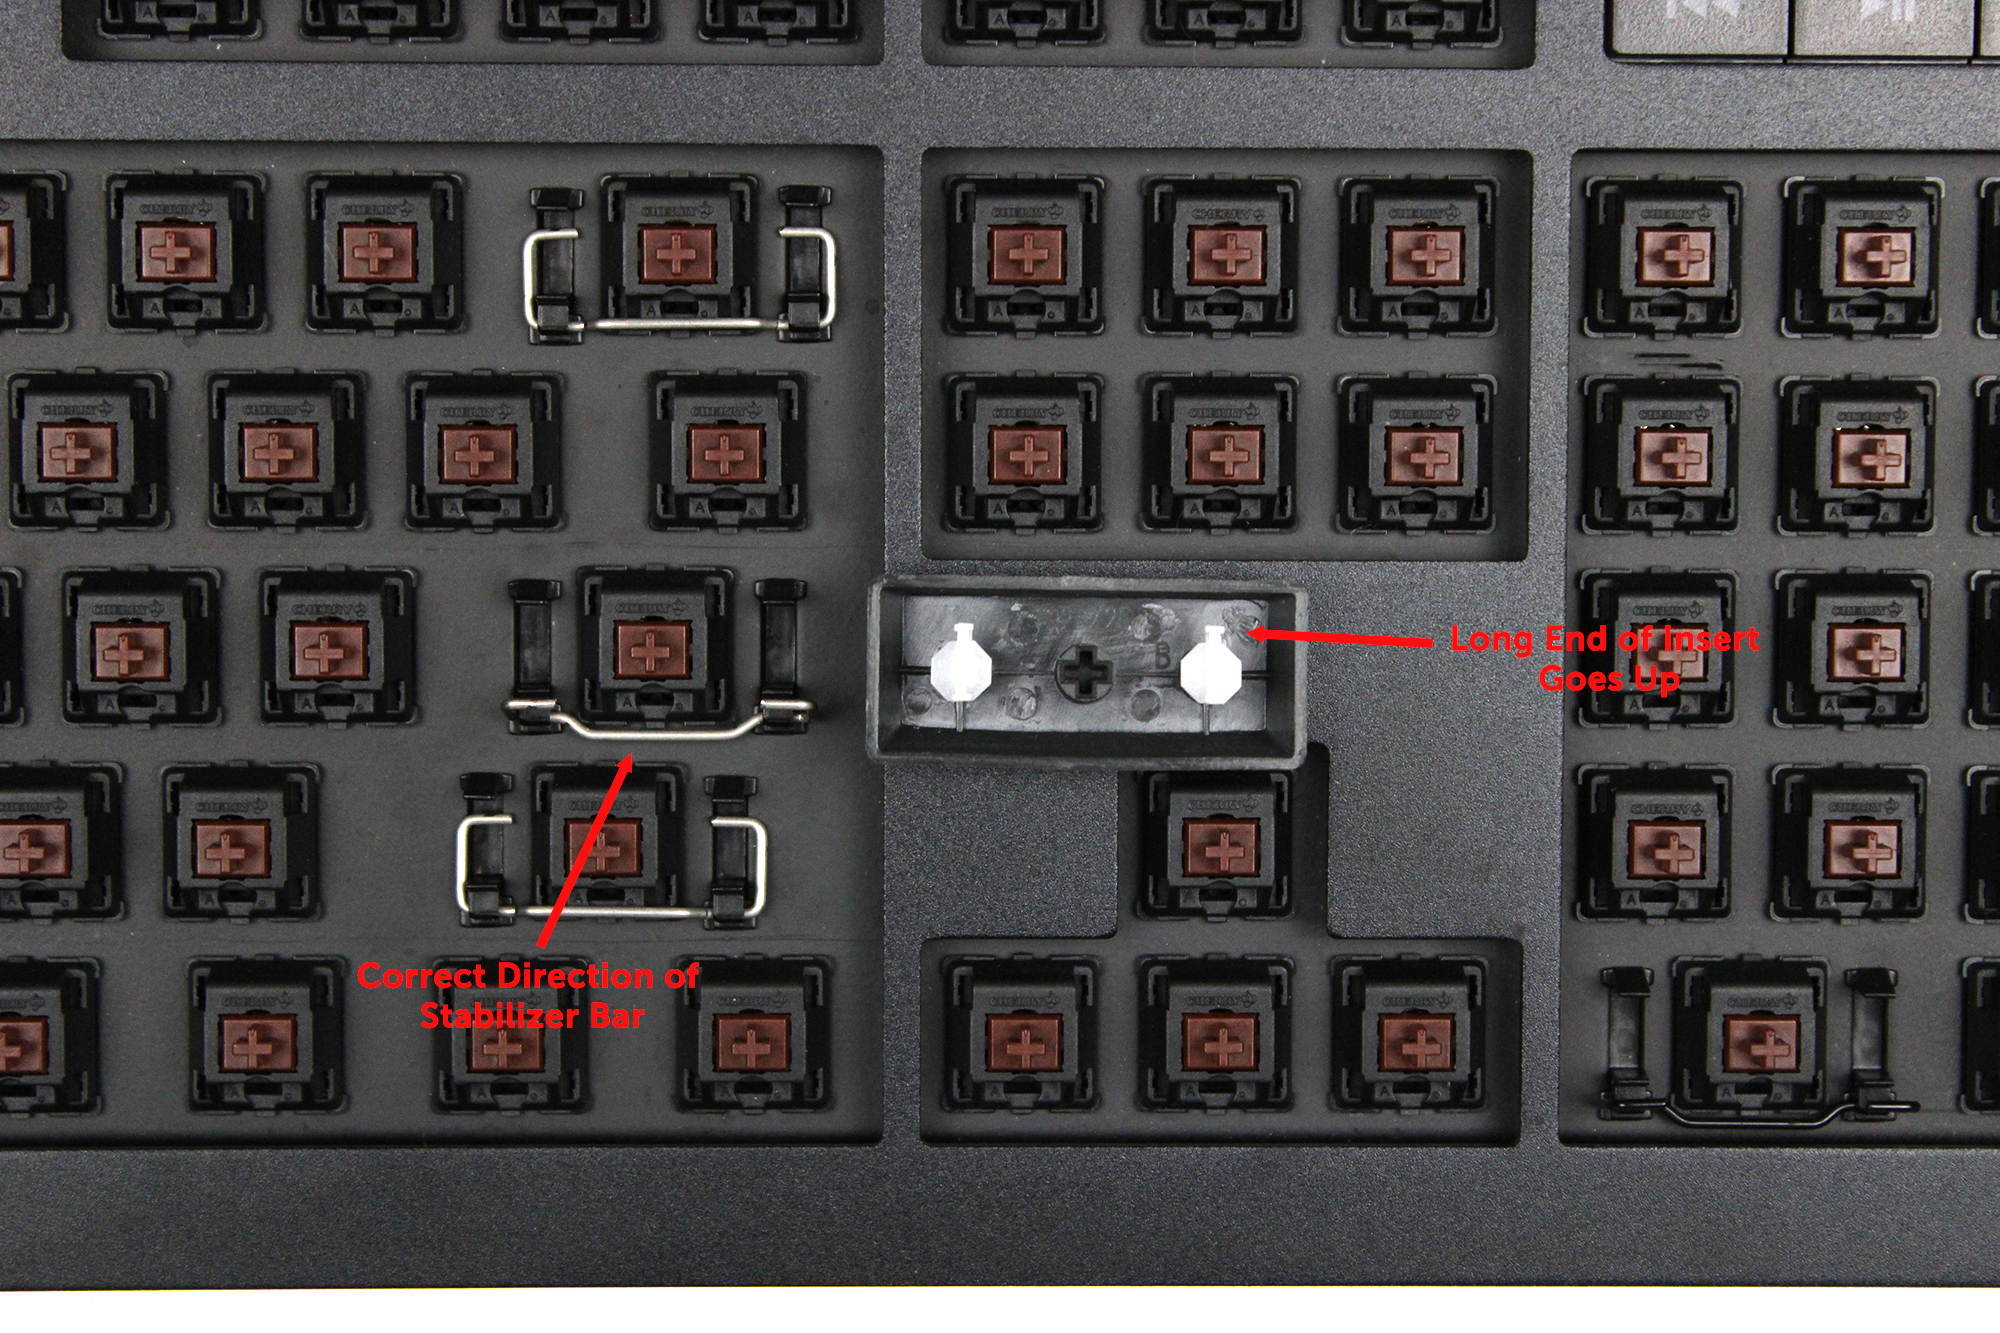 How to attach a stabilizer to a keyboard